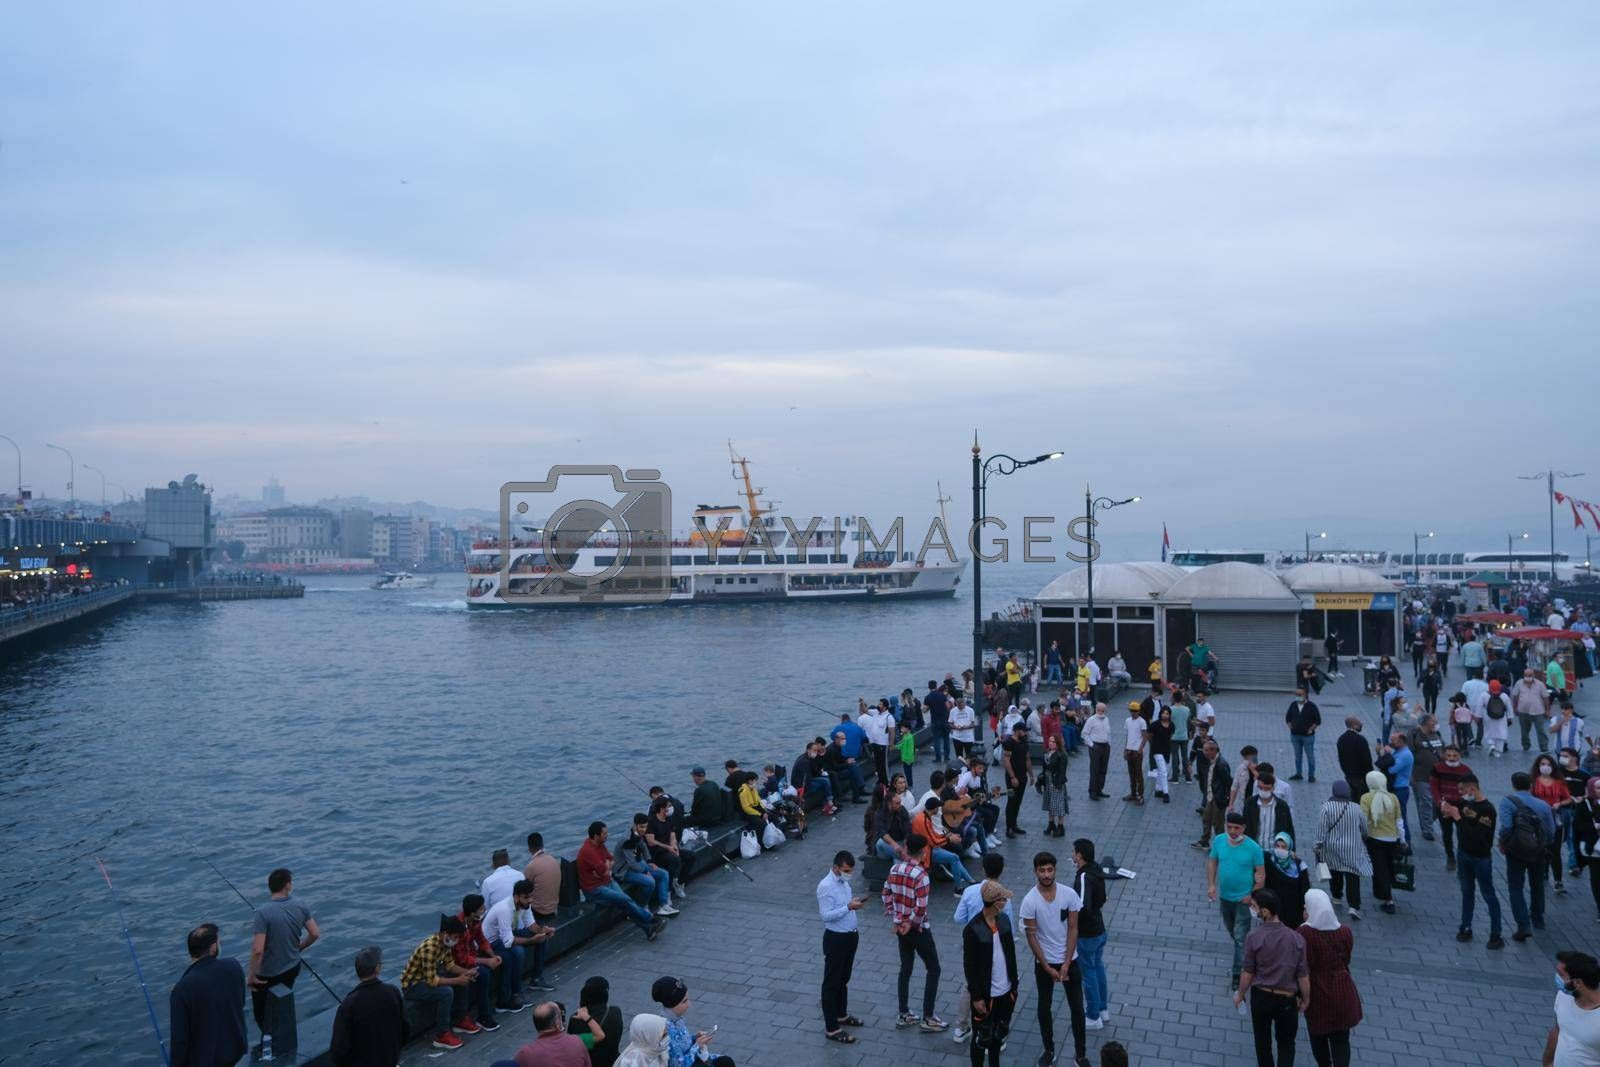 Eminonu, Istanbul, Turkey - November 05, 2020. The picture was taken in Autumn from the steps of Galata bridge in the afternoon and depicts the crowd in front of the coastal region along the ferry port